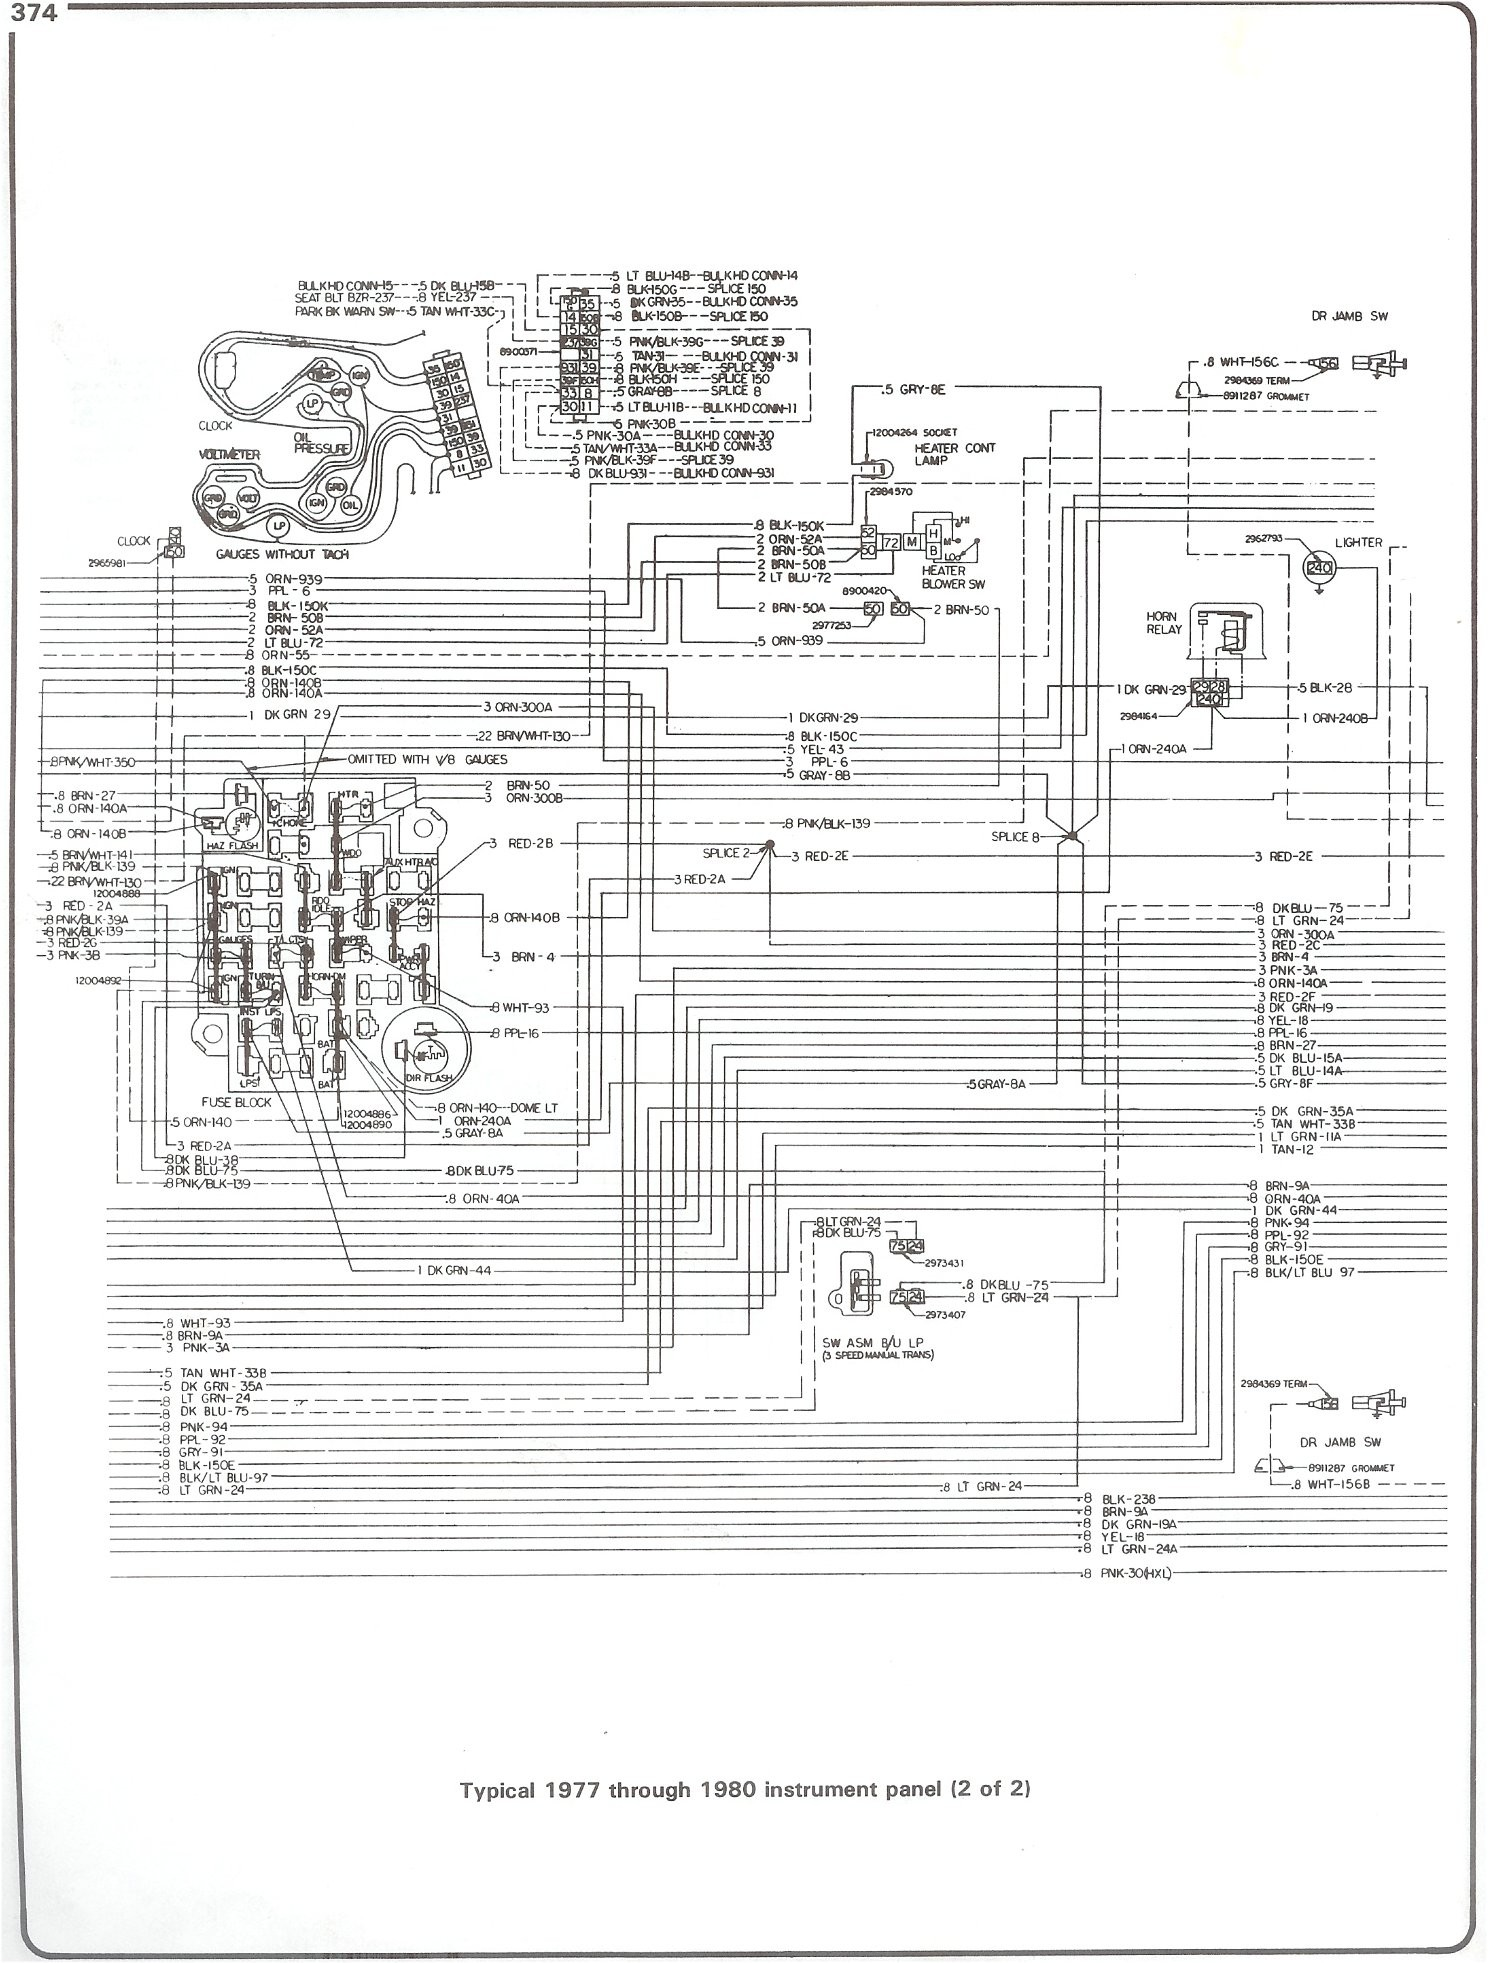 1978 Chevy Suburban Wiring Diagram | Wiring Liry on